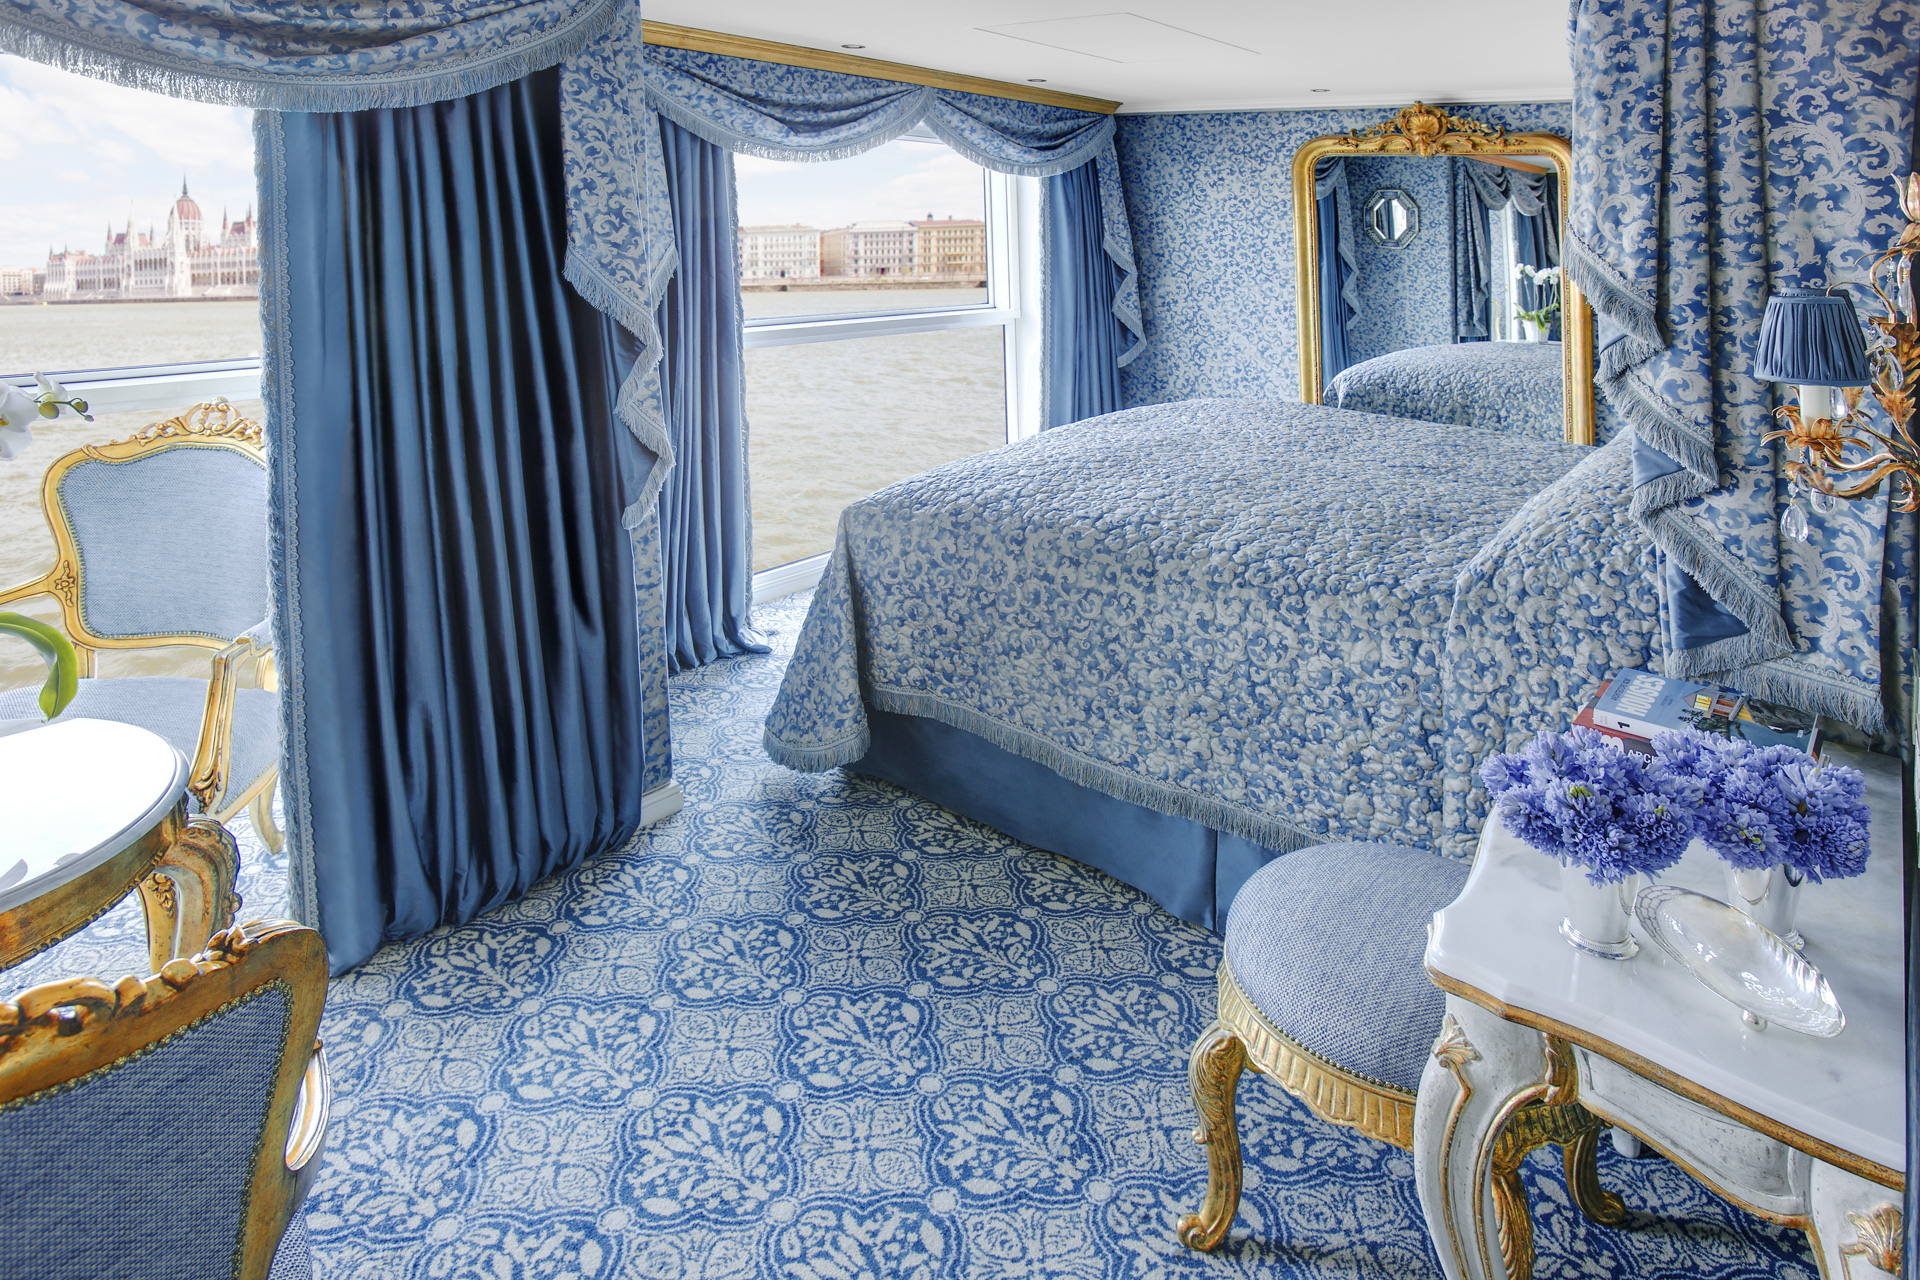 UNIWORLD Boutique River Cruises SS Maria Theresa Accommodation Suite 410.jpg